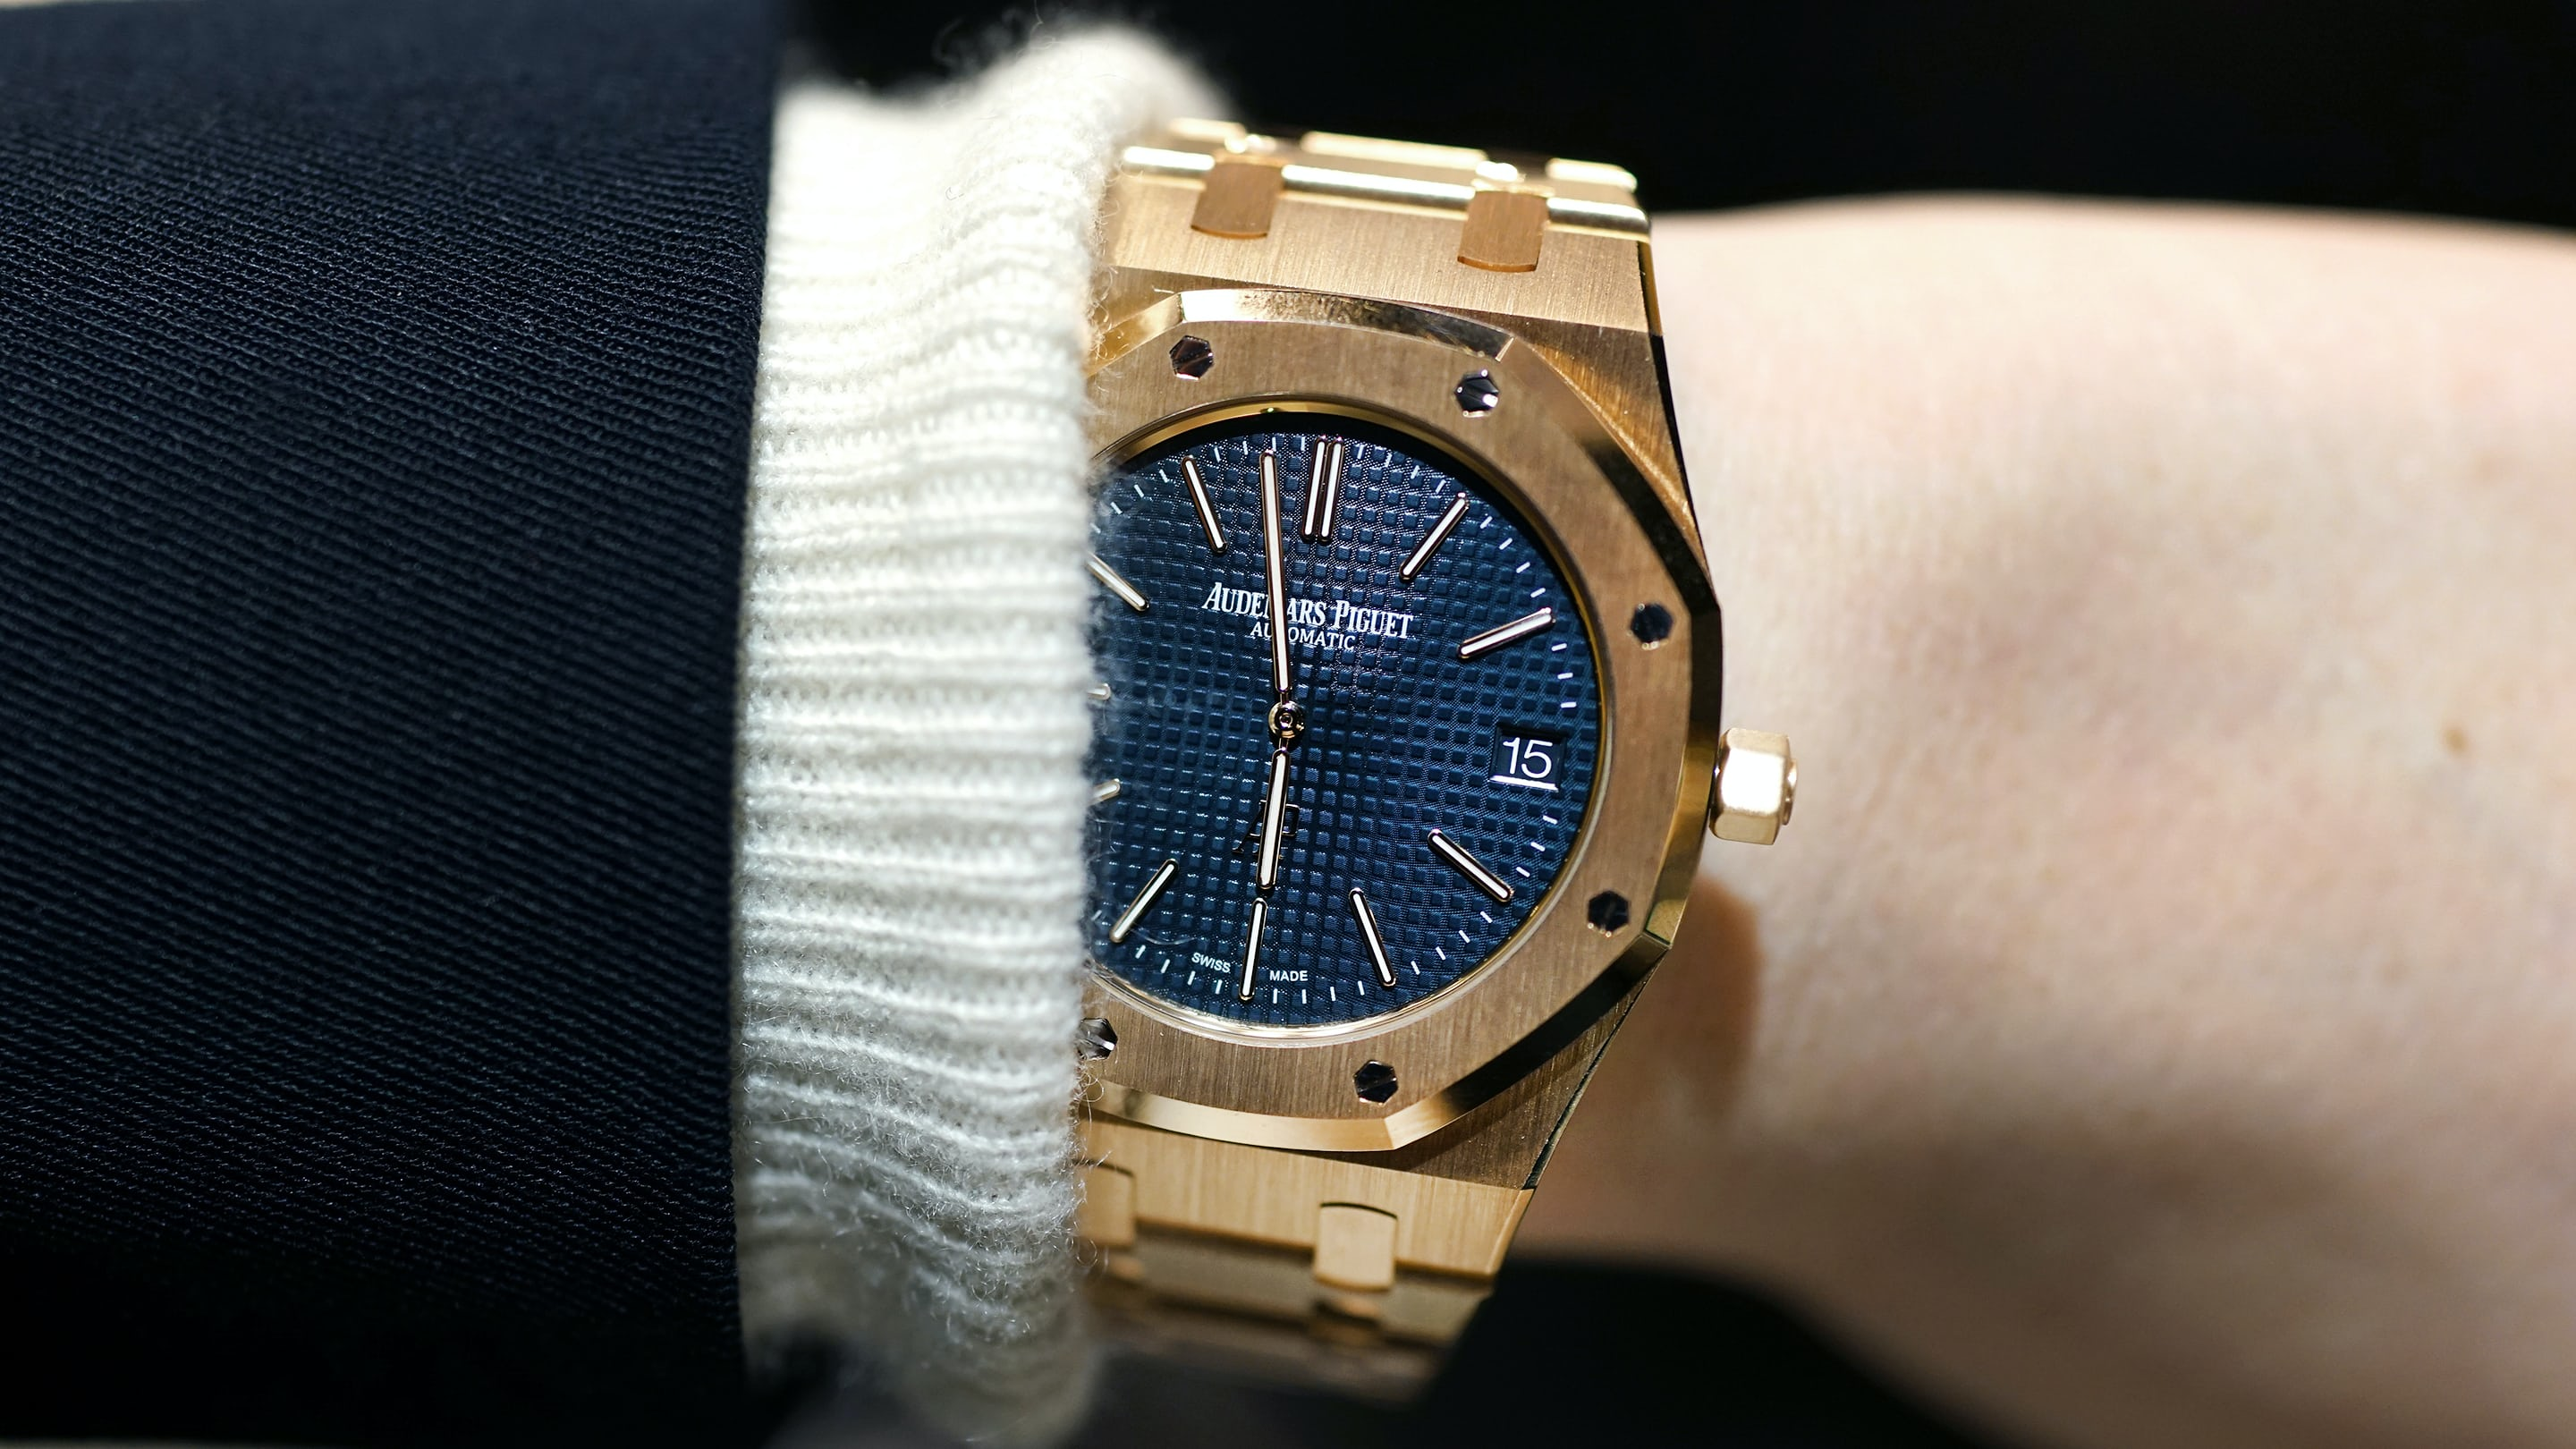 4a8449f656d1 Hands-On  The Audemars Piguet Extra-Thin  Jumbo  Royal Oak Reference 15202  In Yellow Gold - HODINKEE